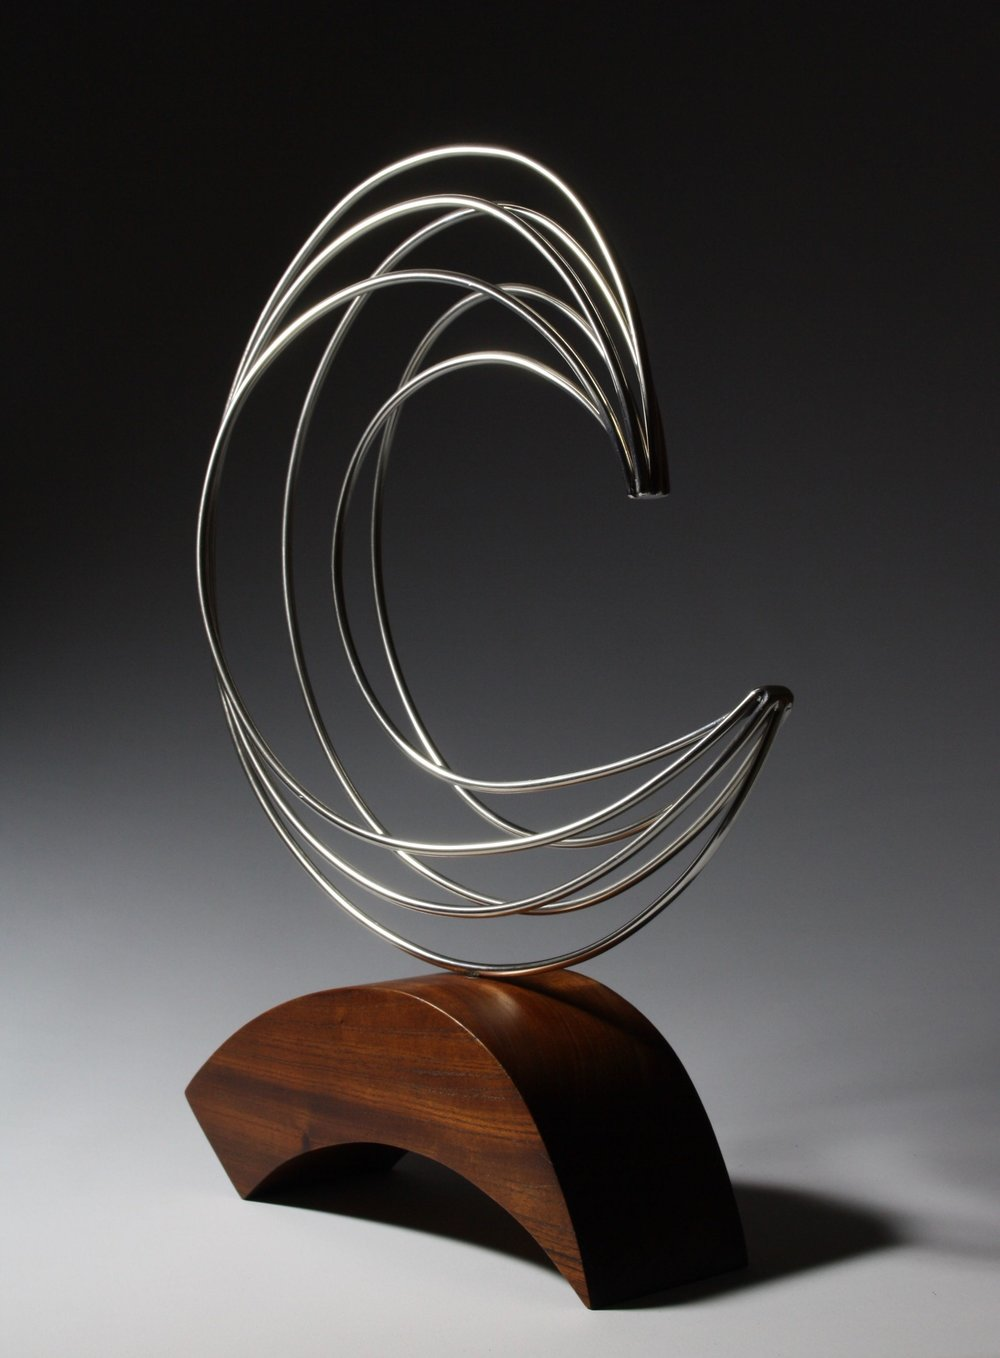 'Breaking Waves'     Dimensions:  52x40x20cm   Wood:  Cedar and Stainless Steel   Artist Statement:  The inspiration of this sculpture came from looking at a clam shell with its curved radial lines, which when you study the clam has lines on the outside in the shape of a wave.